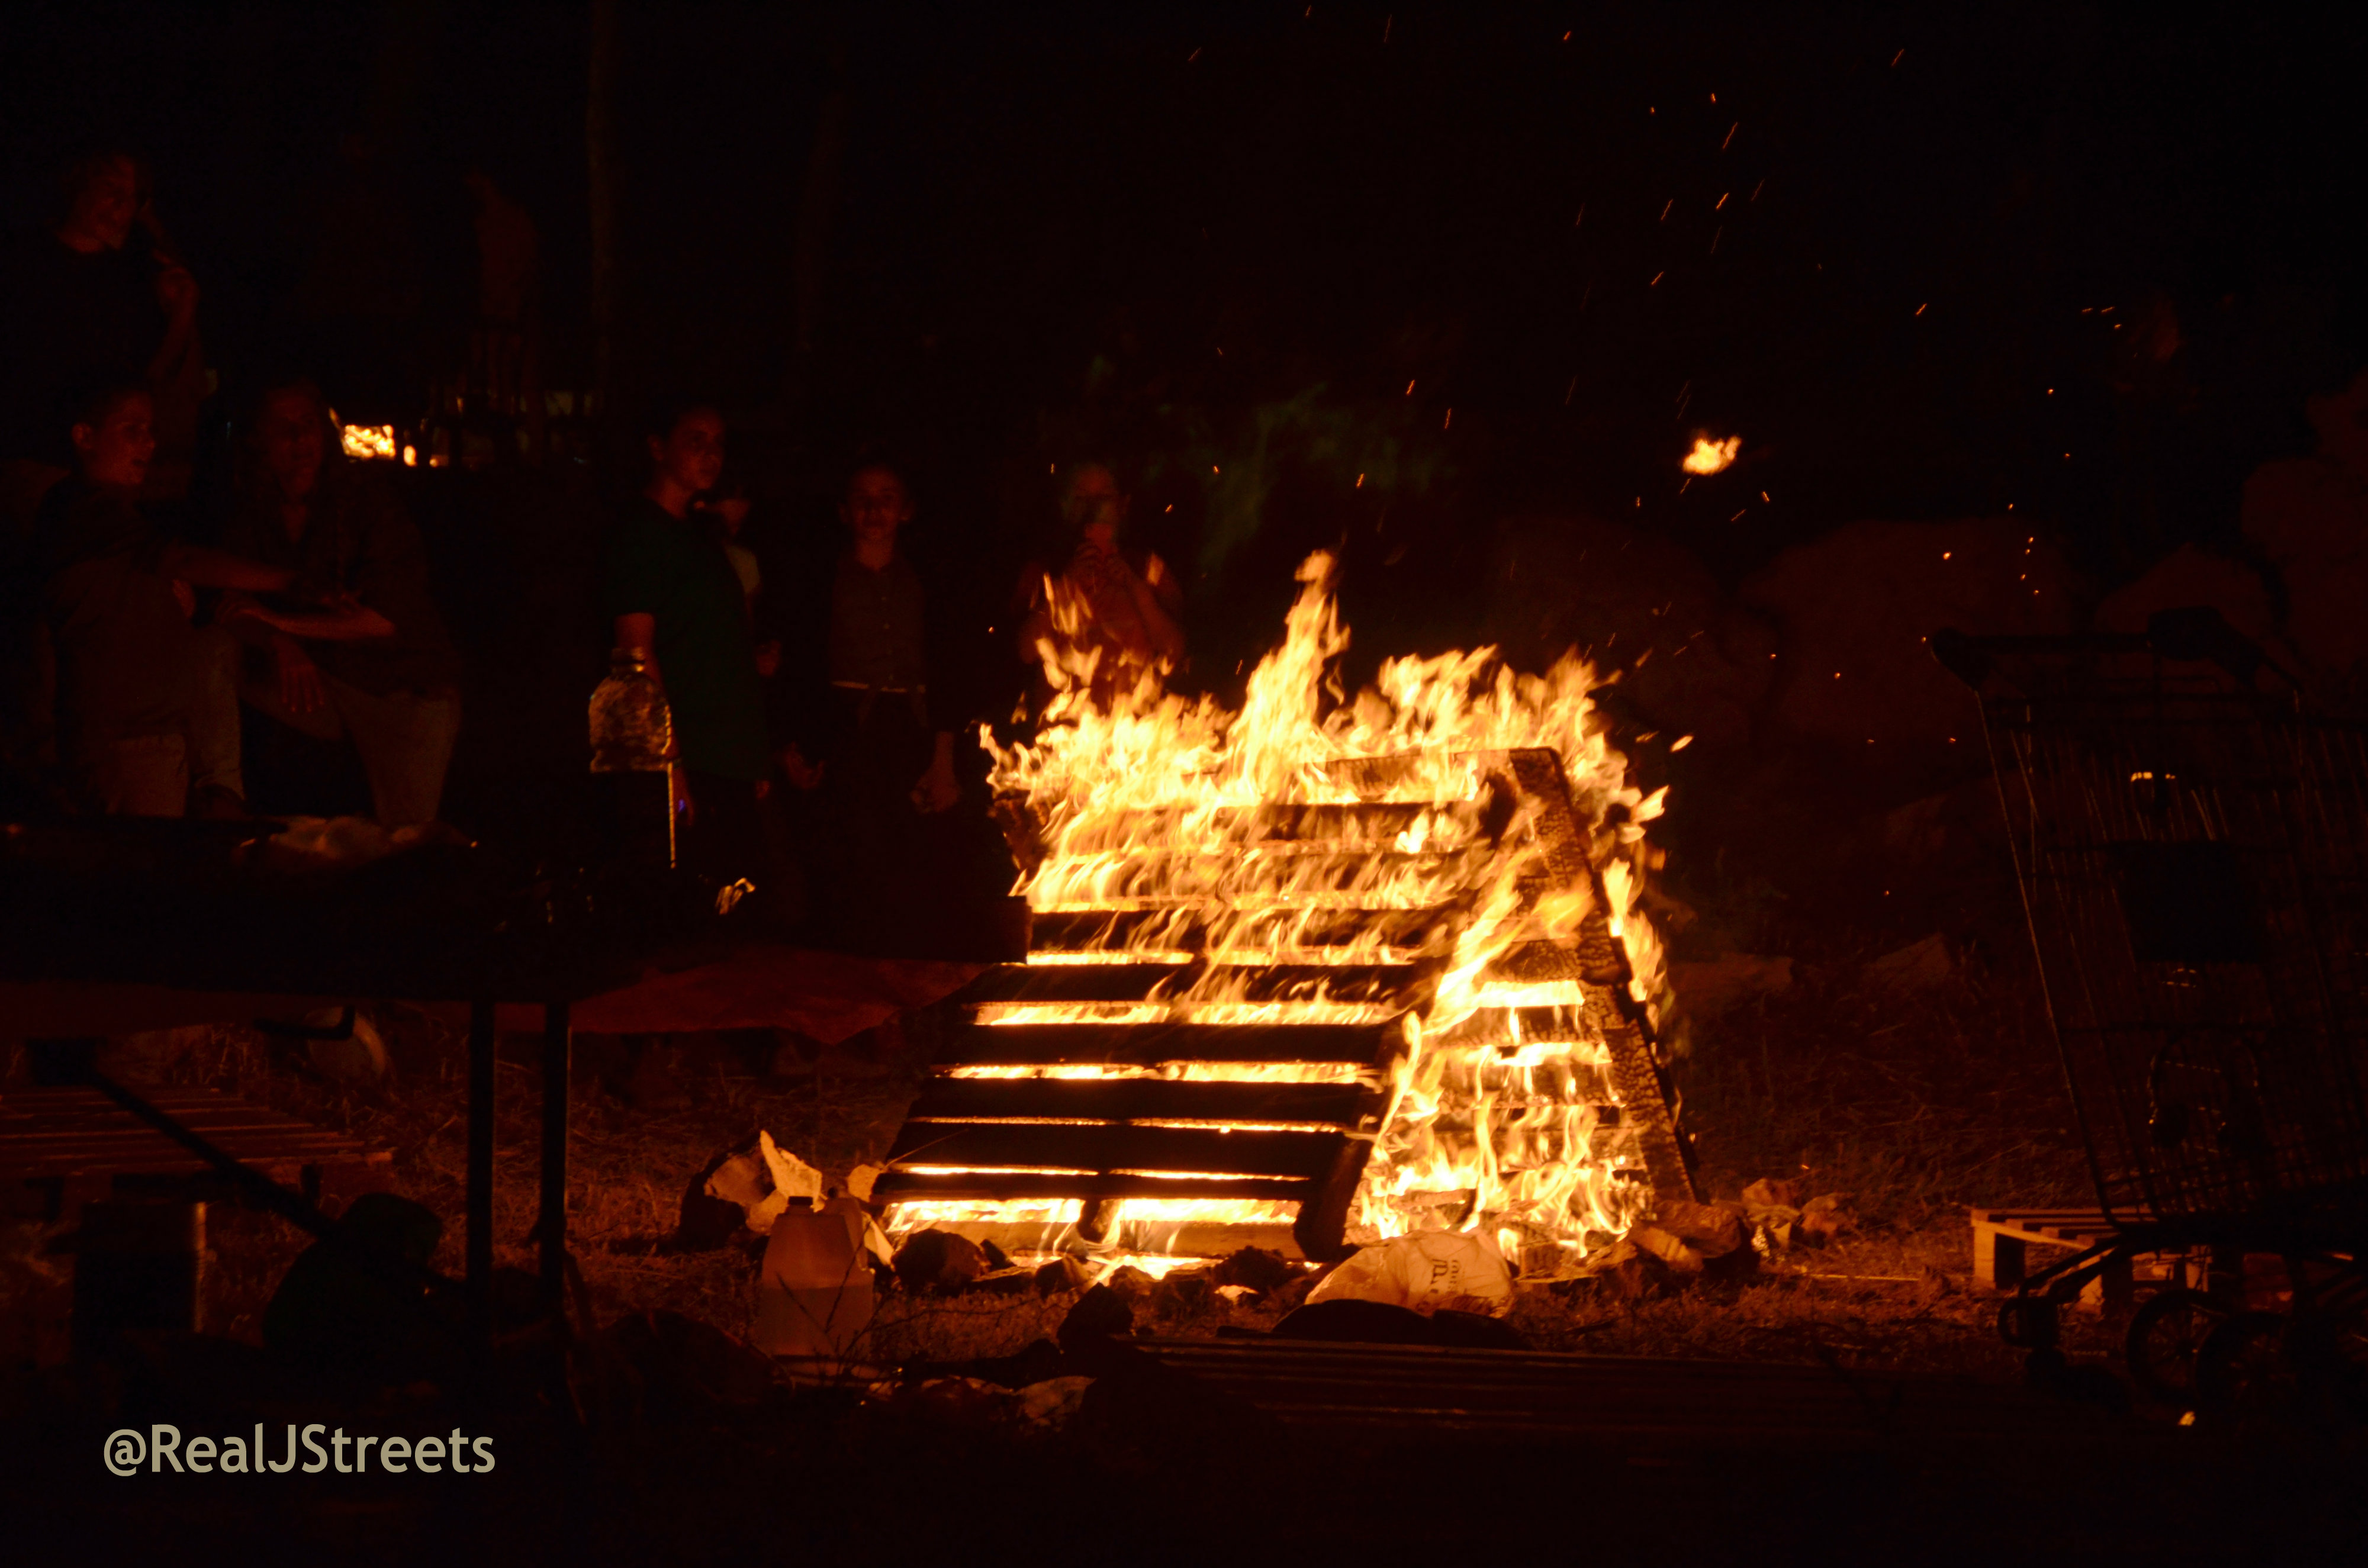 bonfire on lag b'Omer